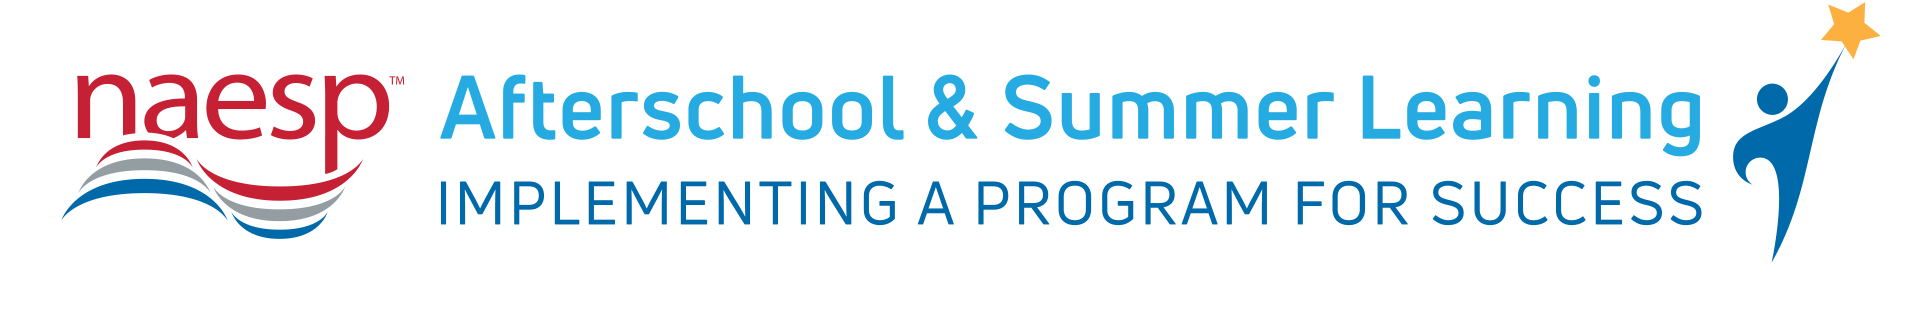 NAESP Afterschool and Summer Learning Portal